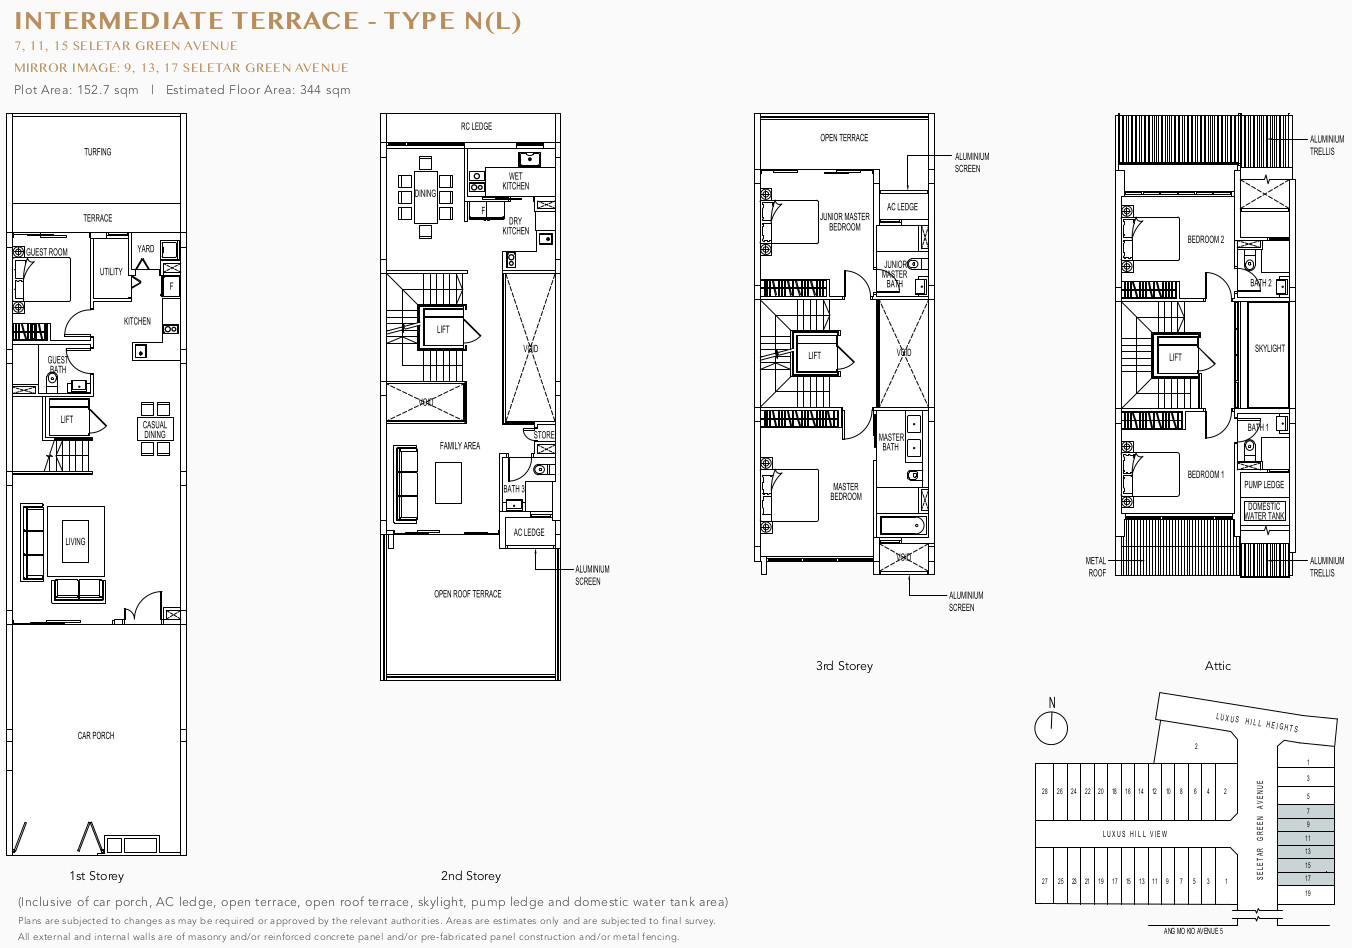 Luxus Hill Floor Plan . Intermediate Terrace Type N